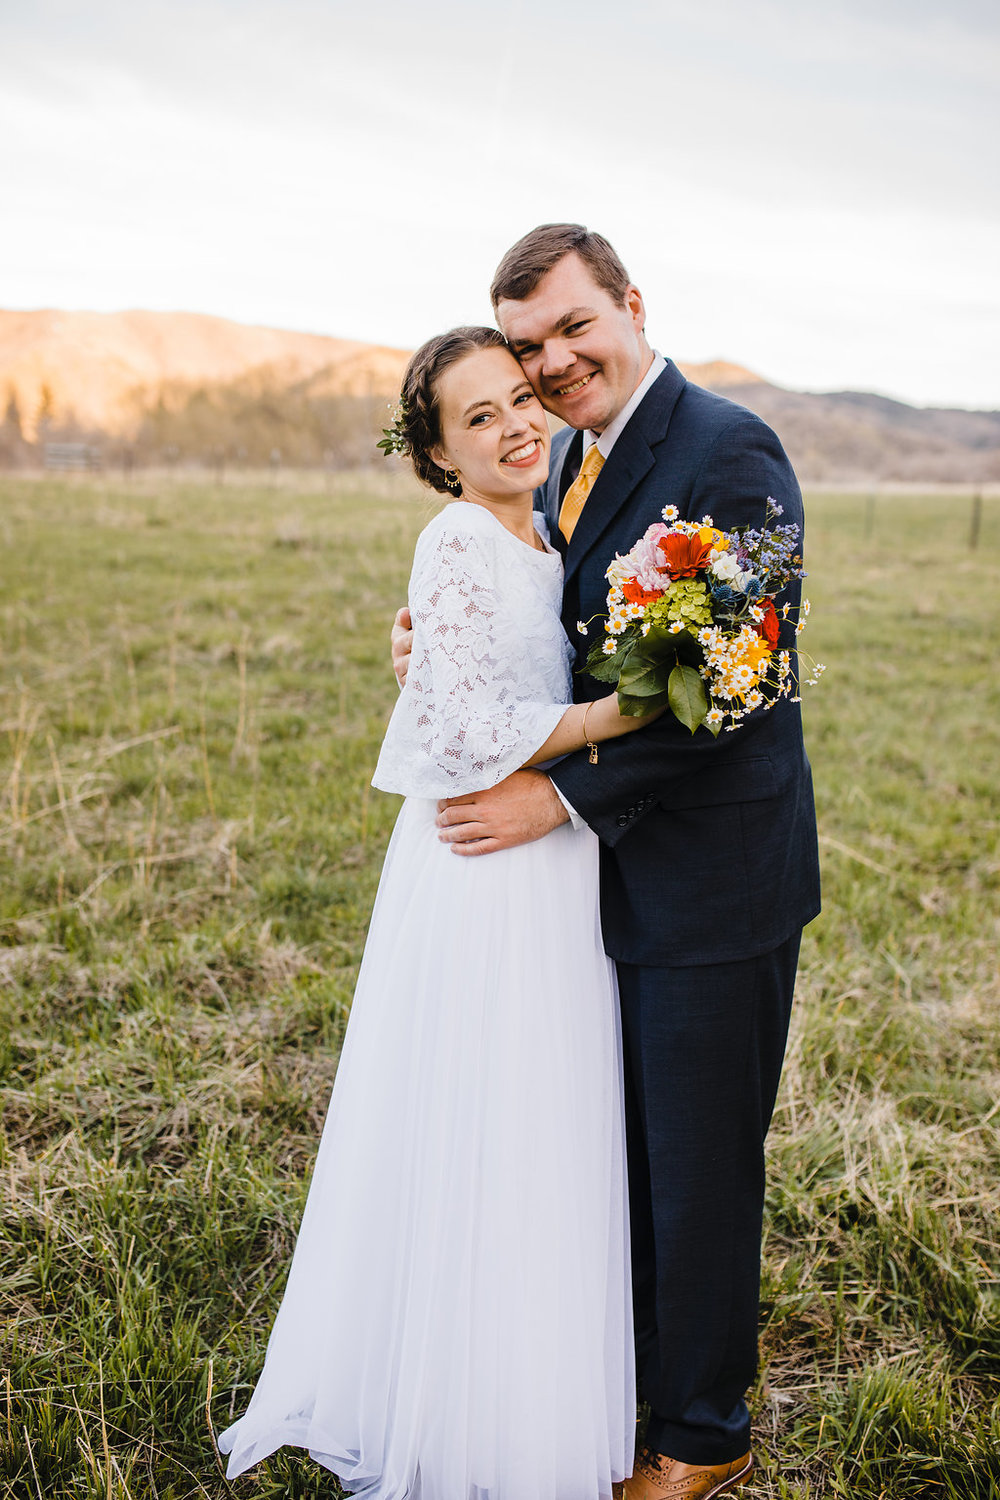 brigham city wedding photographer formals photographer mormon lds young couple modest wedding dress navy groom suit